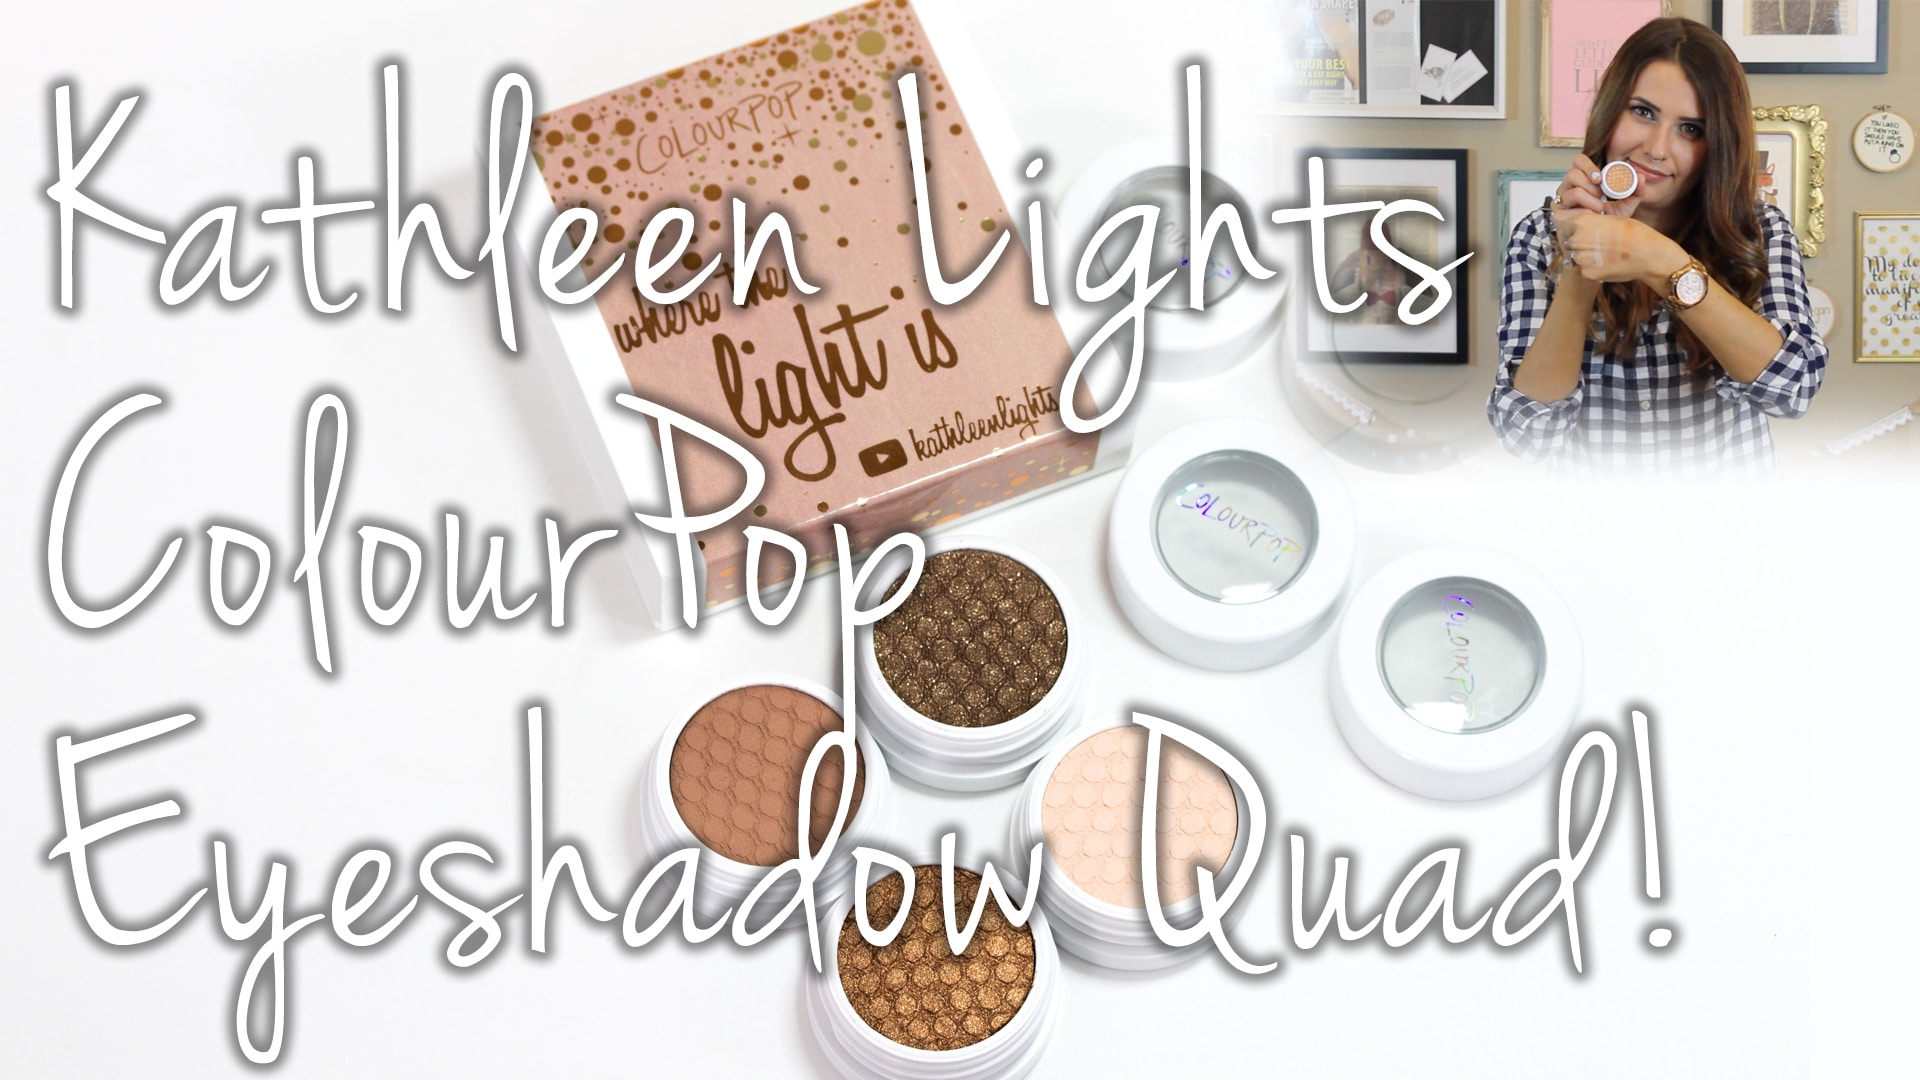 Where The Light Is Eyeshadow Quad (KathleenLights x ColourPop) Video